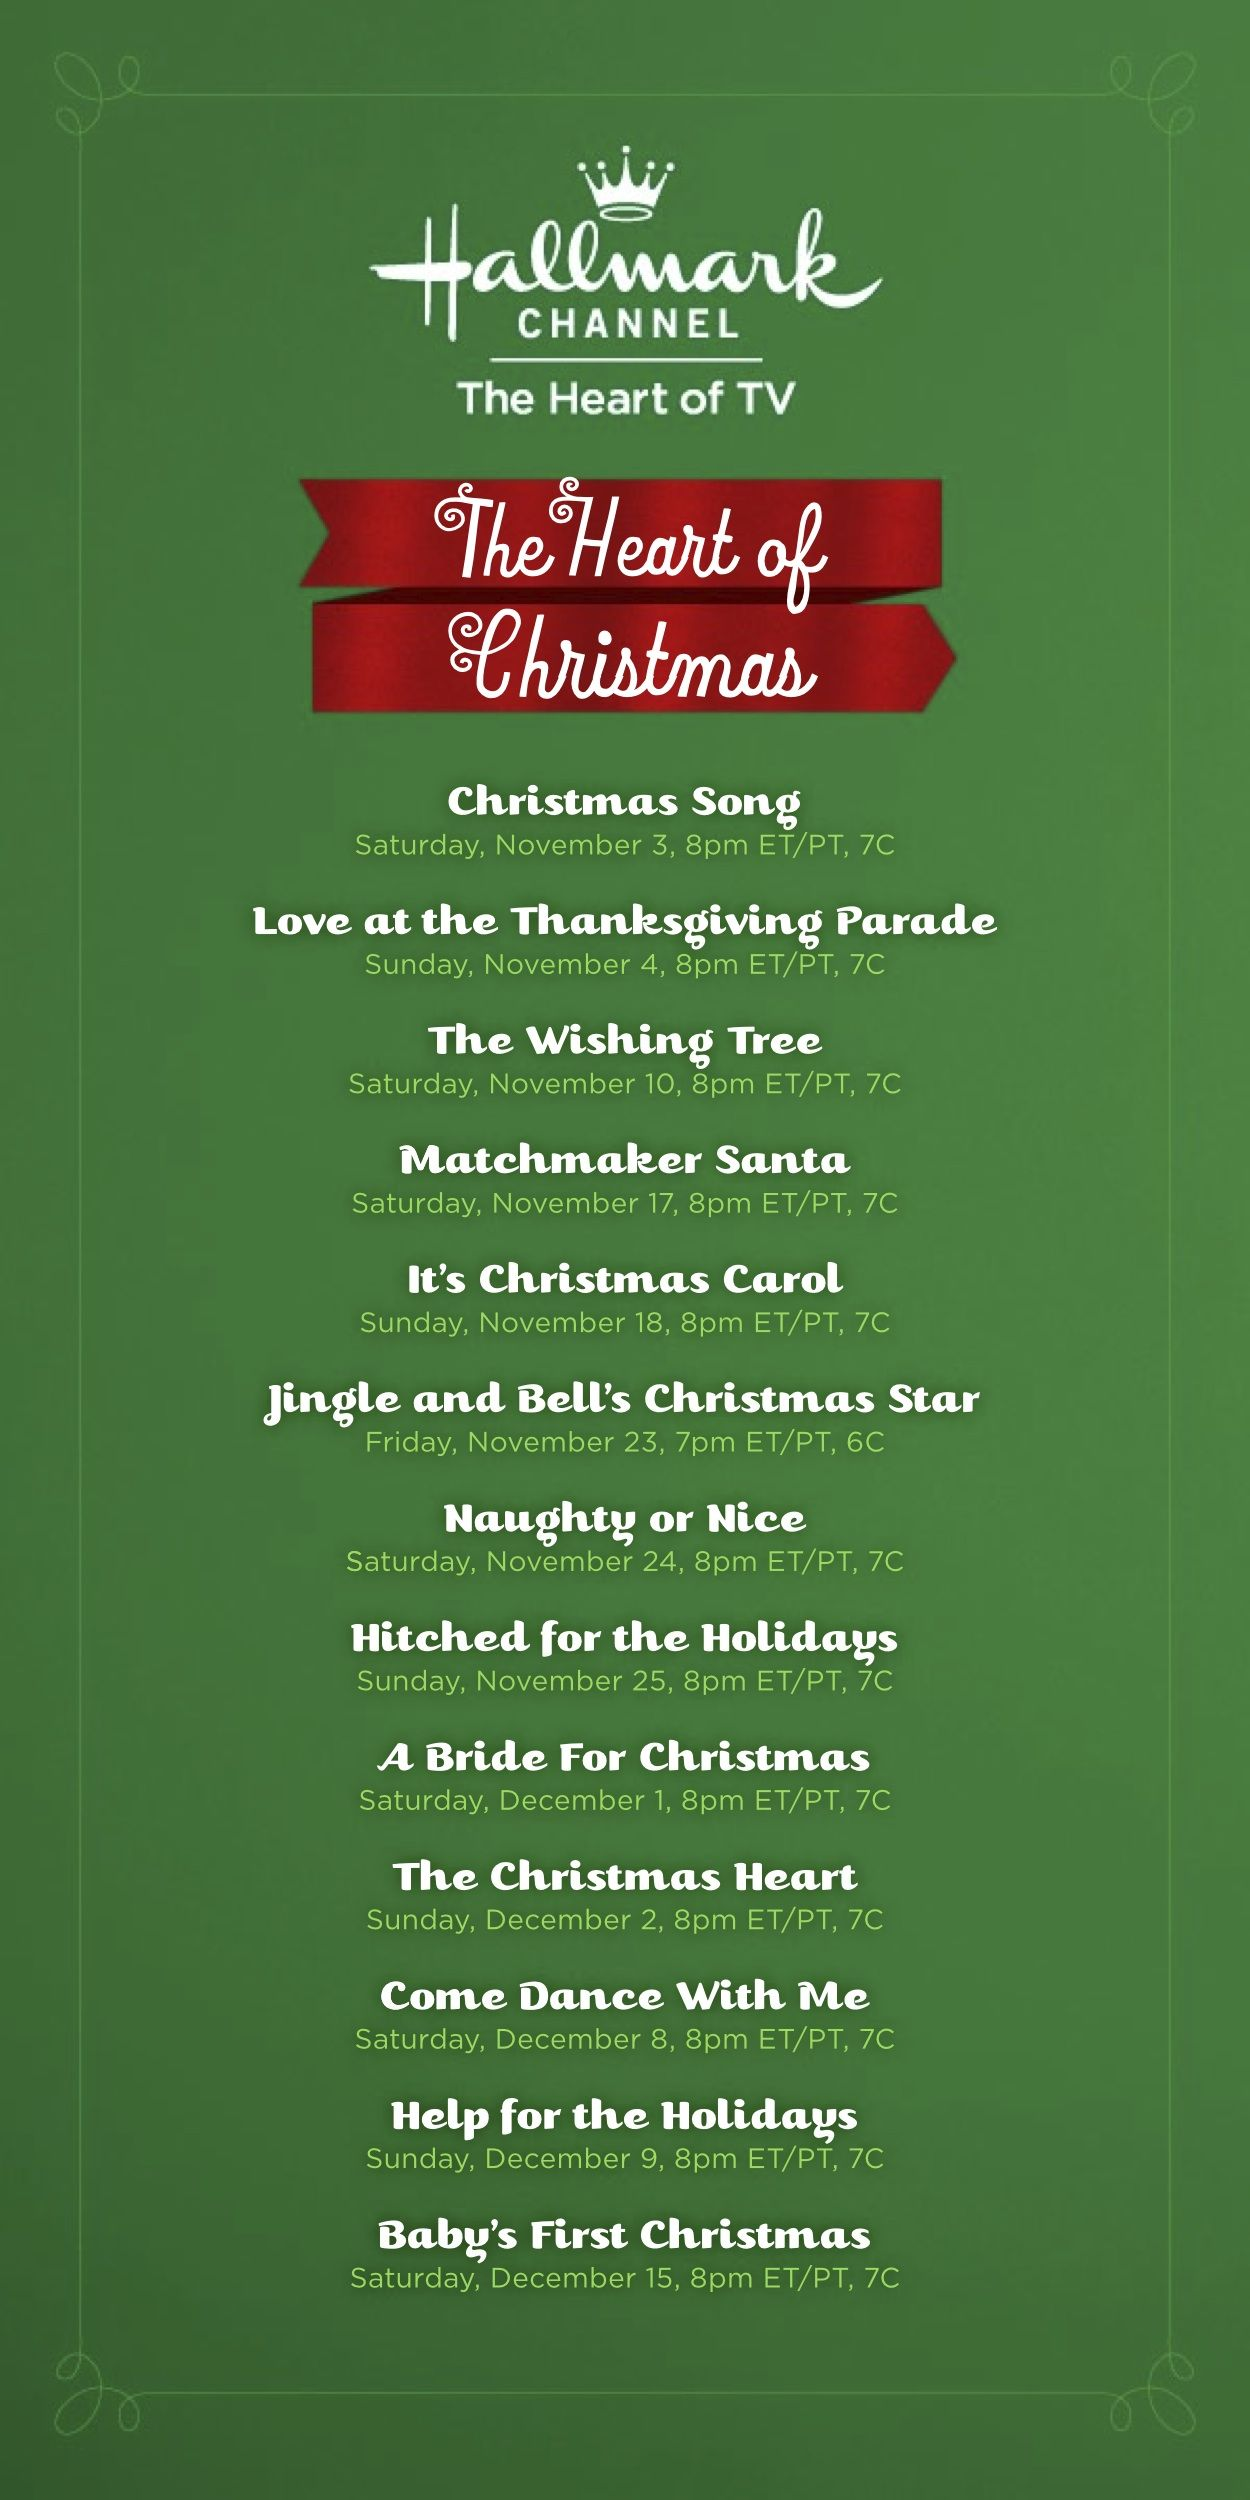 Hallmark Movie Guide Here Is The Holiday Movie Lineup For The Hallmark Channel Christmas Movies Holiday Movie Hallmark Christmas Movies